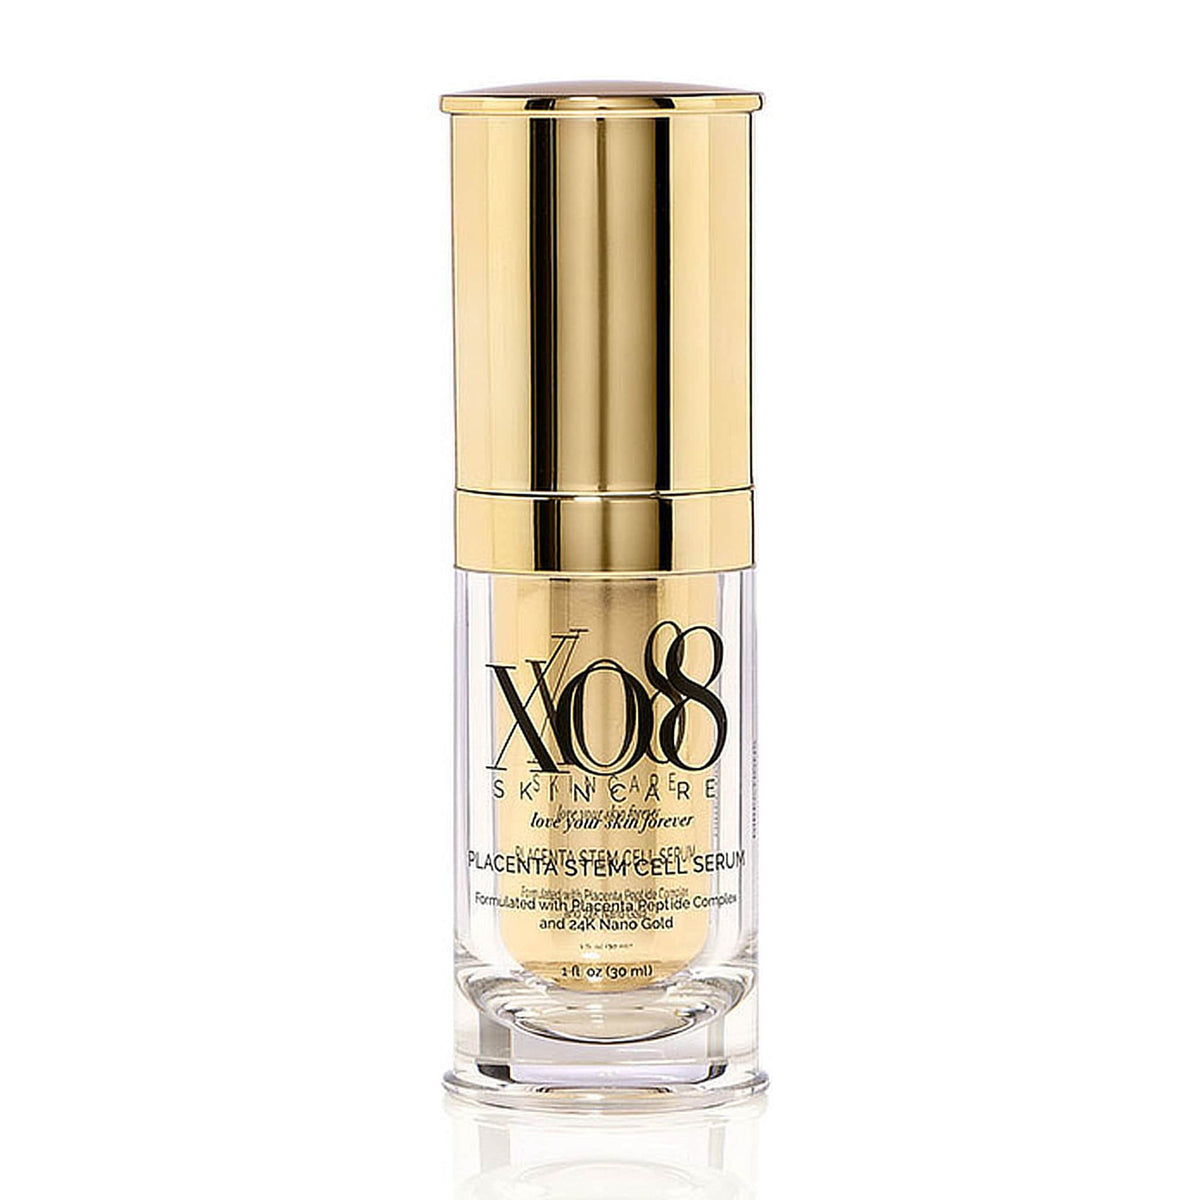 XO8 COSMECEUTICALS - PLACENTA STEM CELL SERUM - Beauty Nook